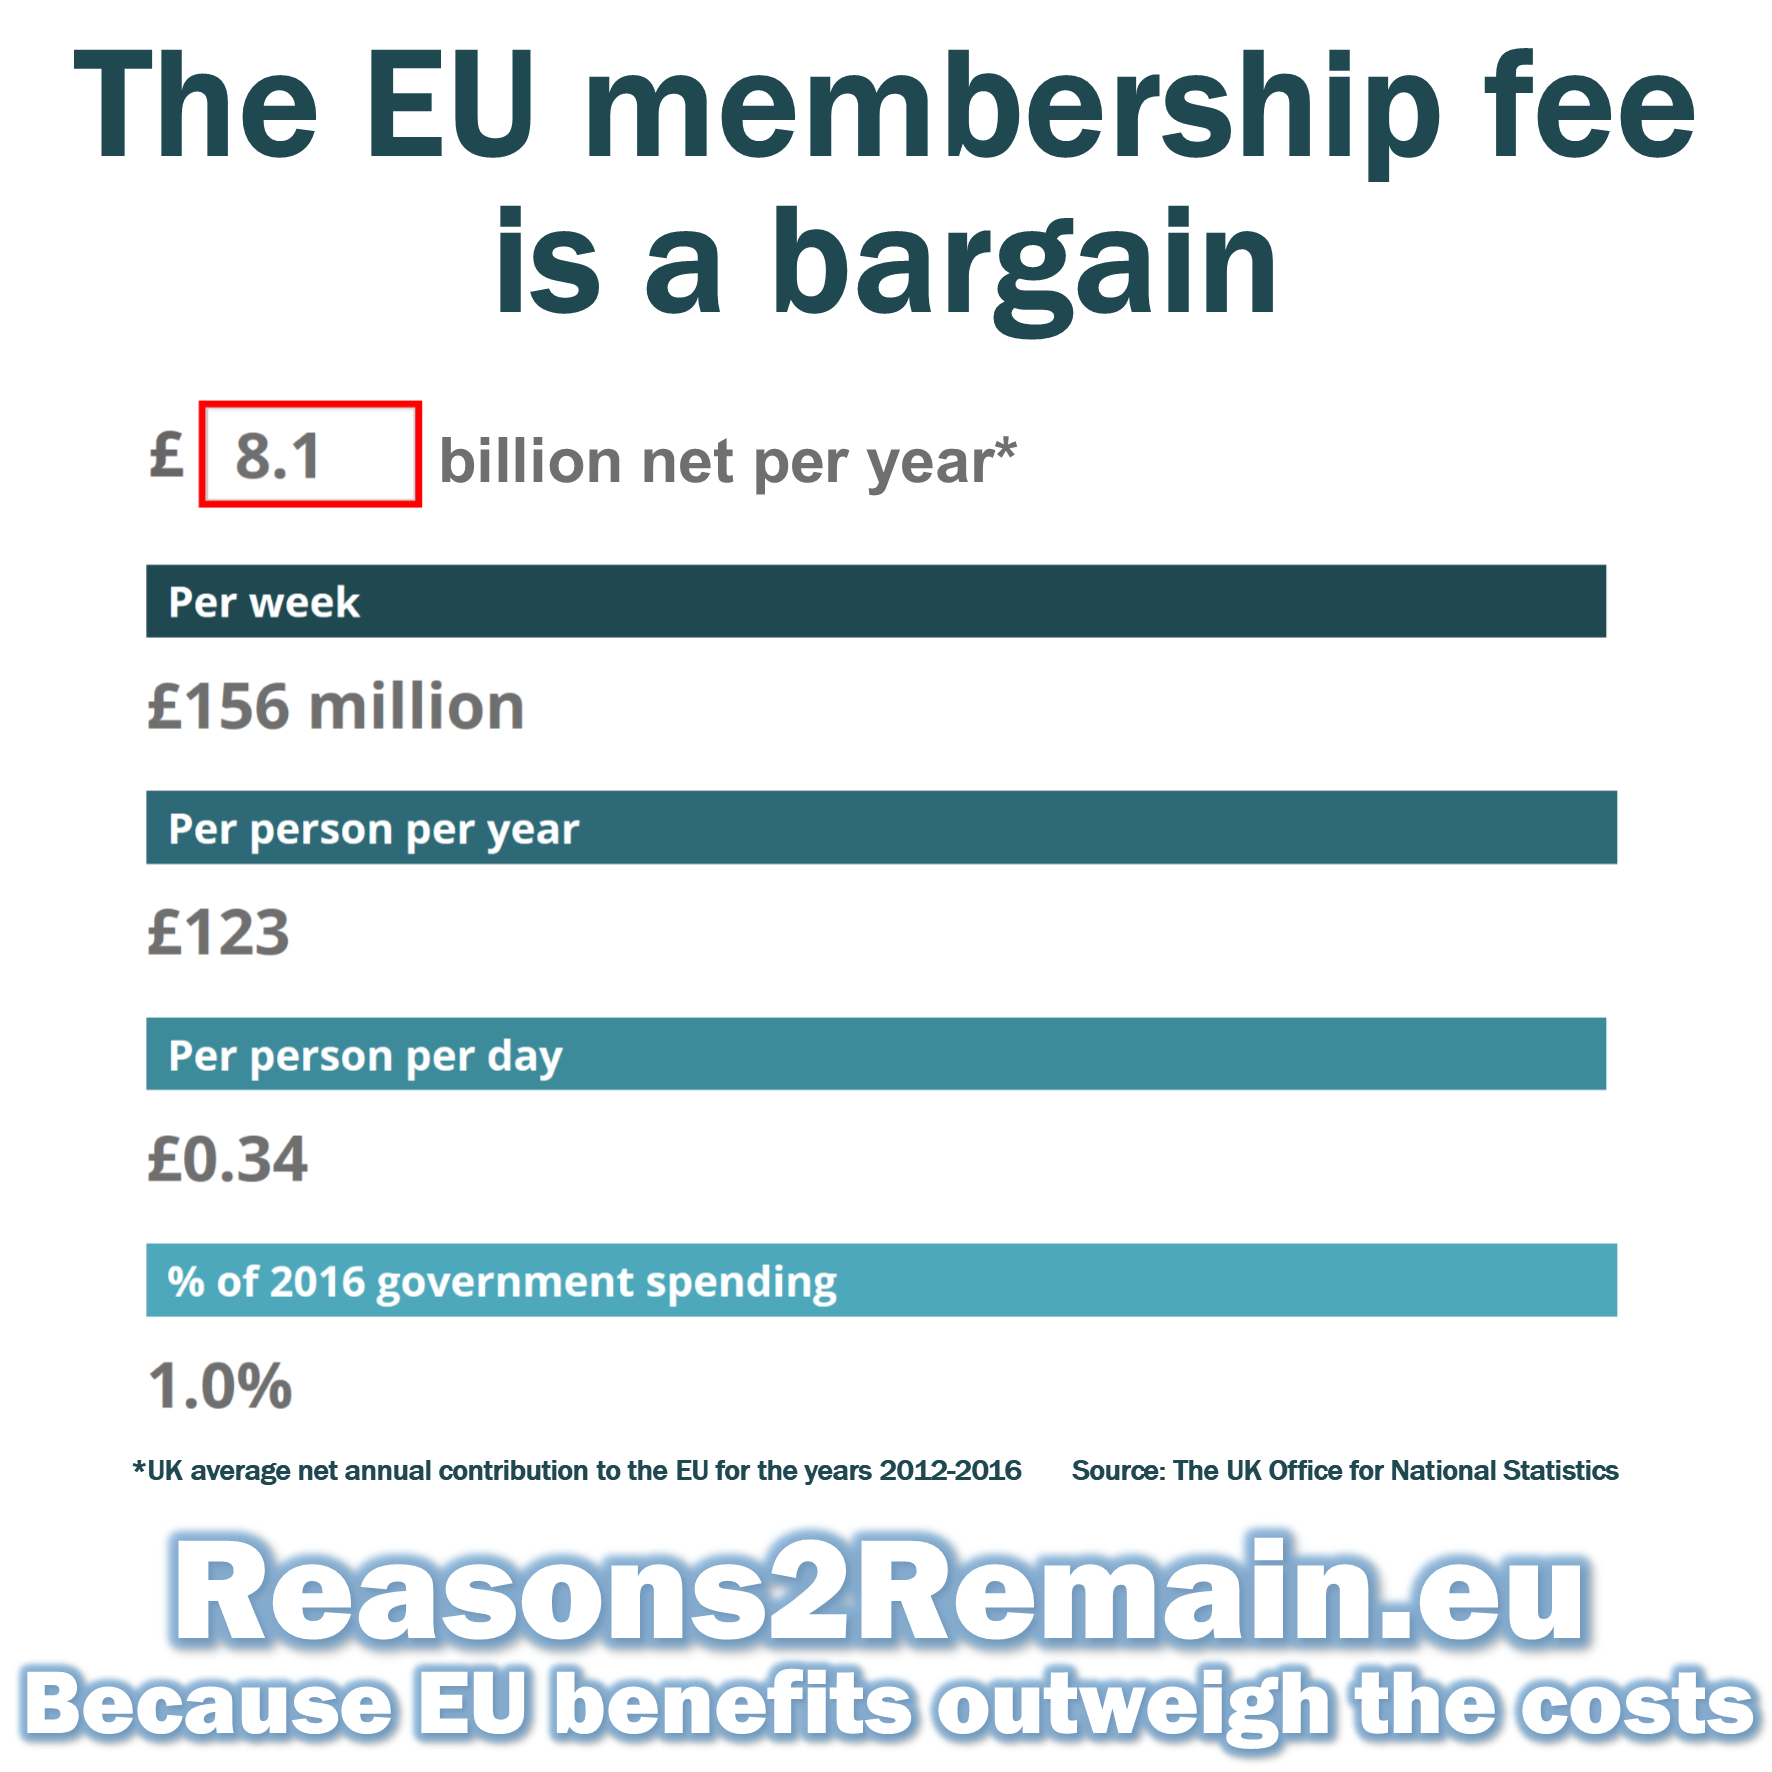 EU membership is a bargain